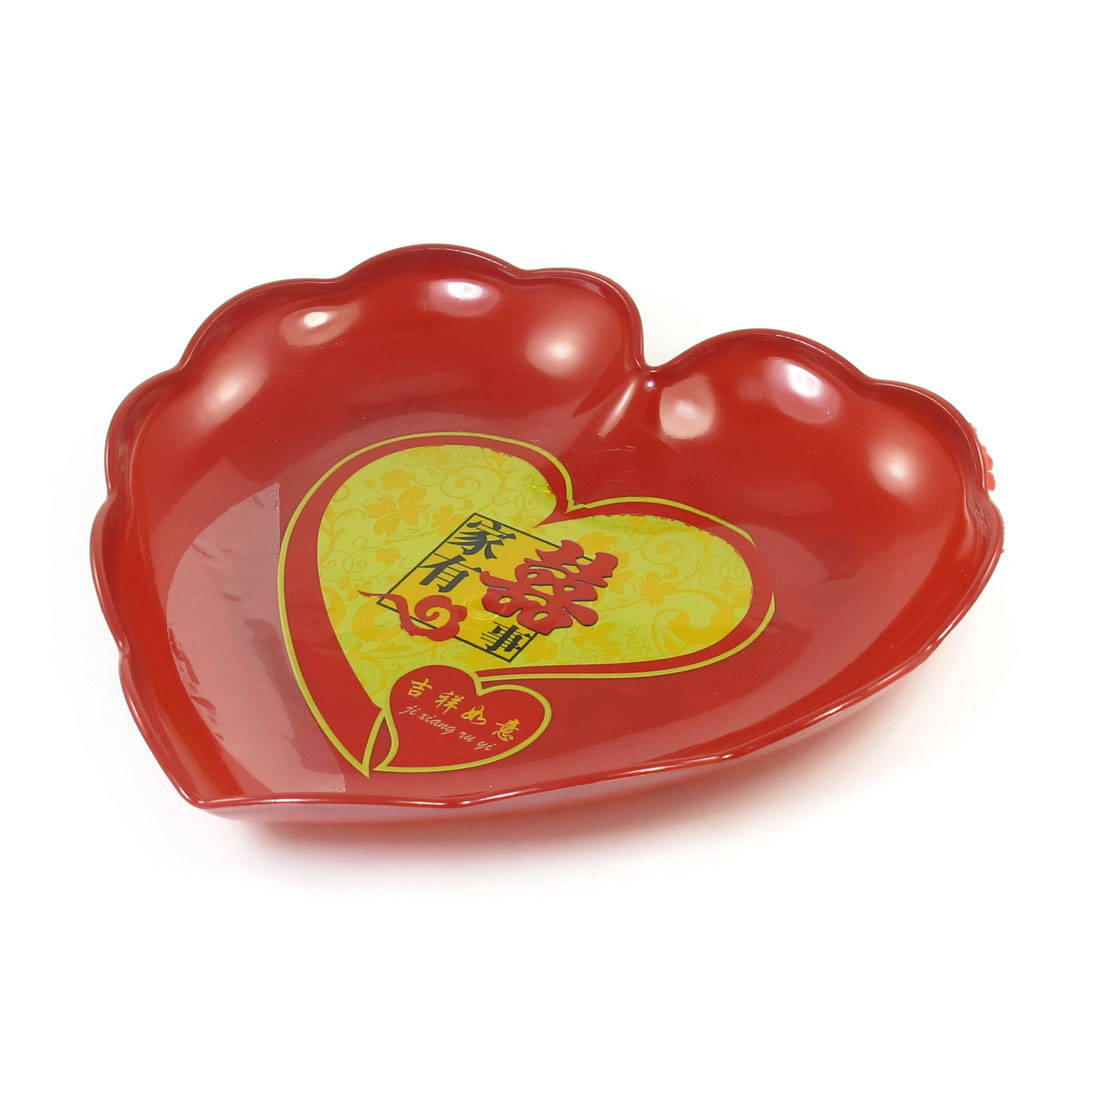 Unique Bargains Family Kitchenware Red Heart Design Fruit Tray Plate Vegetable Container